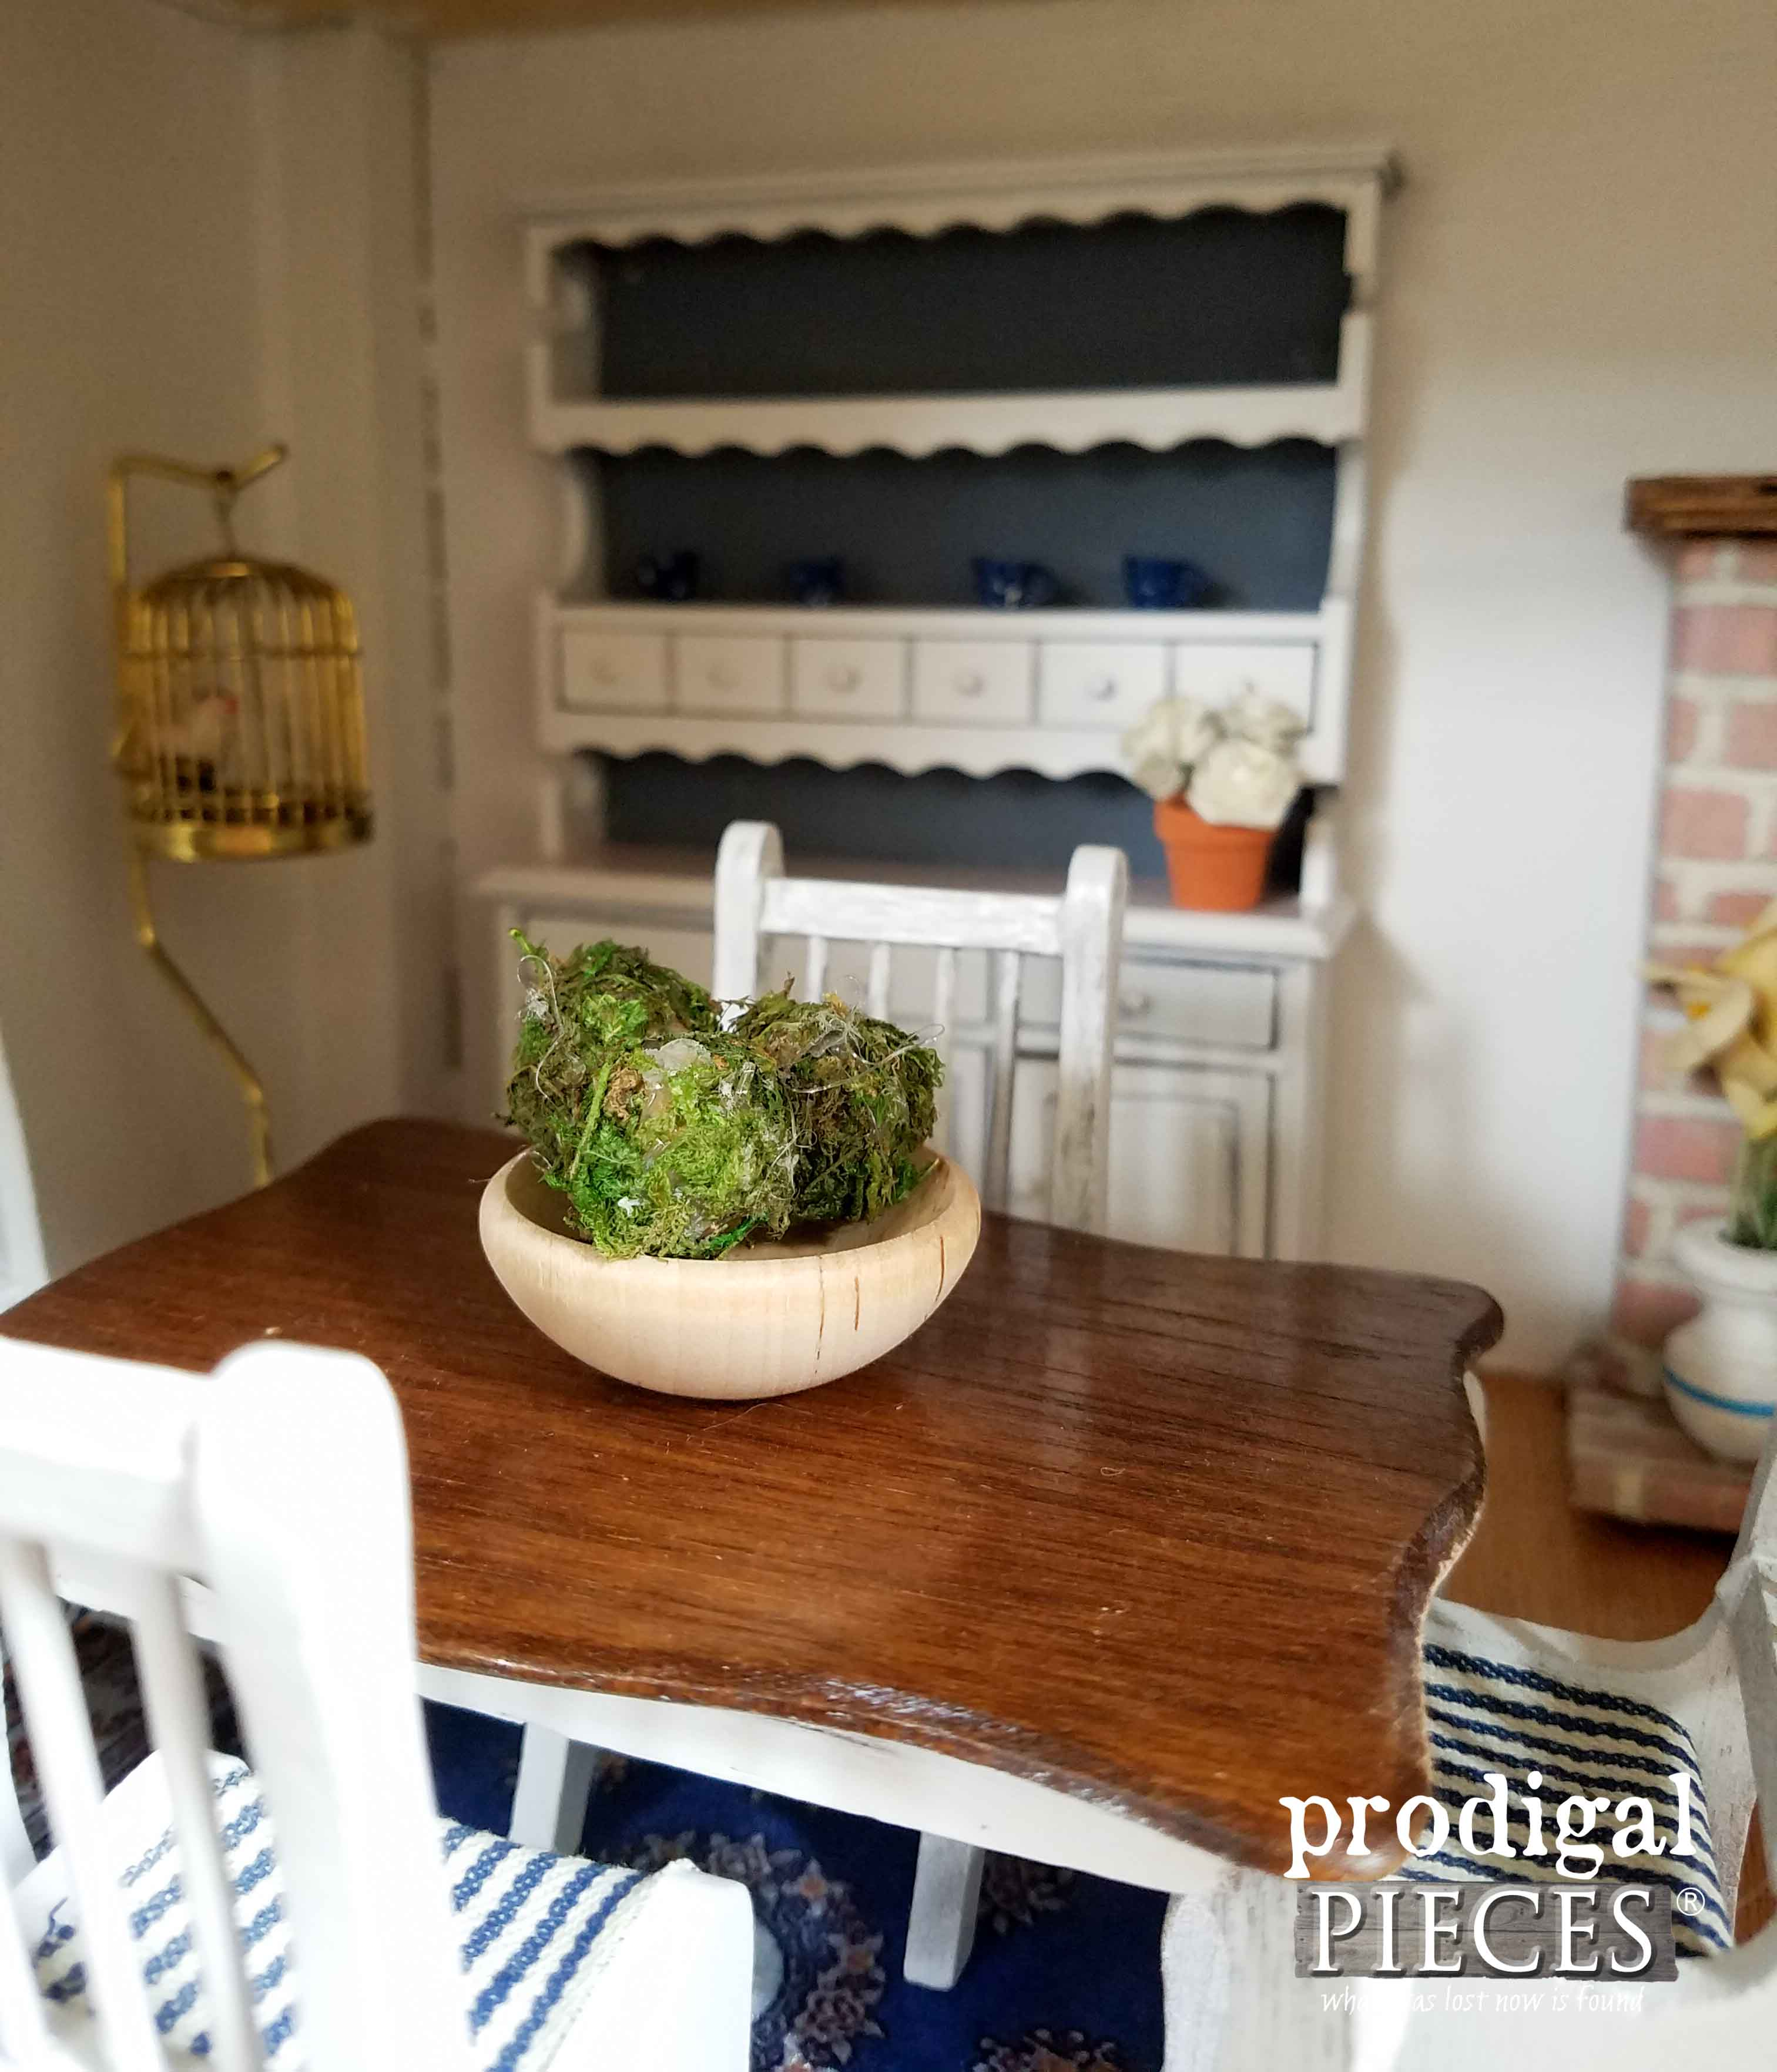 Farmhouse Table in Repurposed Radio Dollhouse by Prodigal Pieces | www.prodigalpieces.com